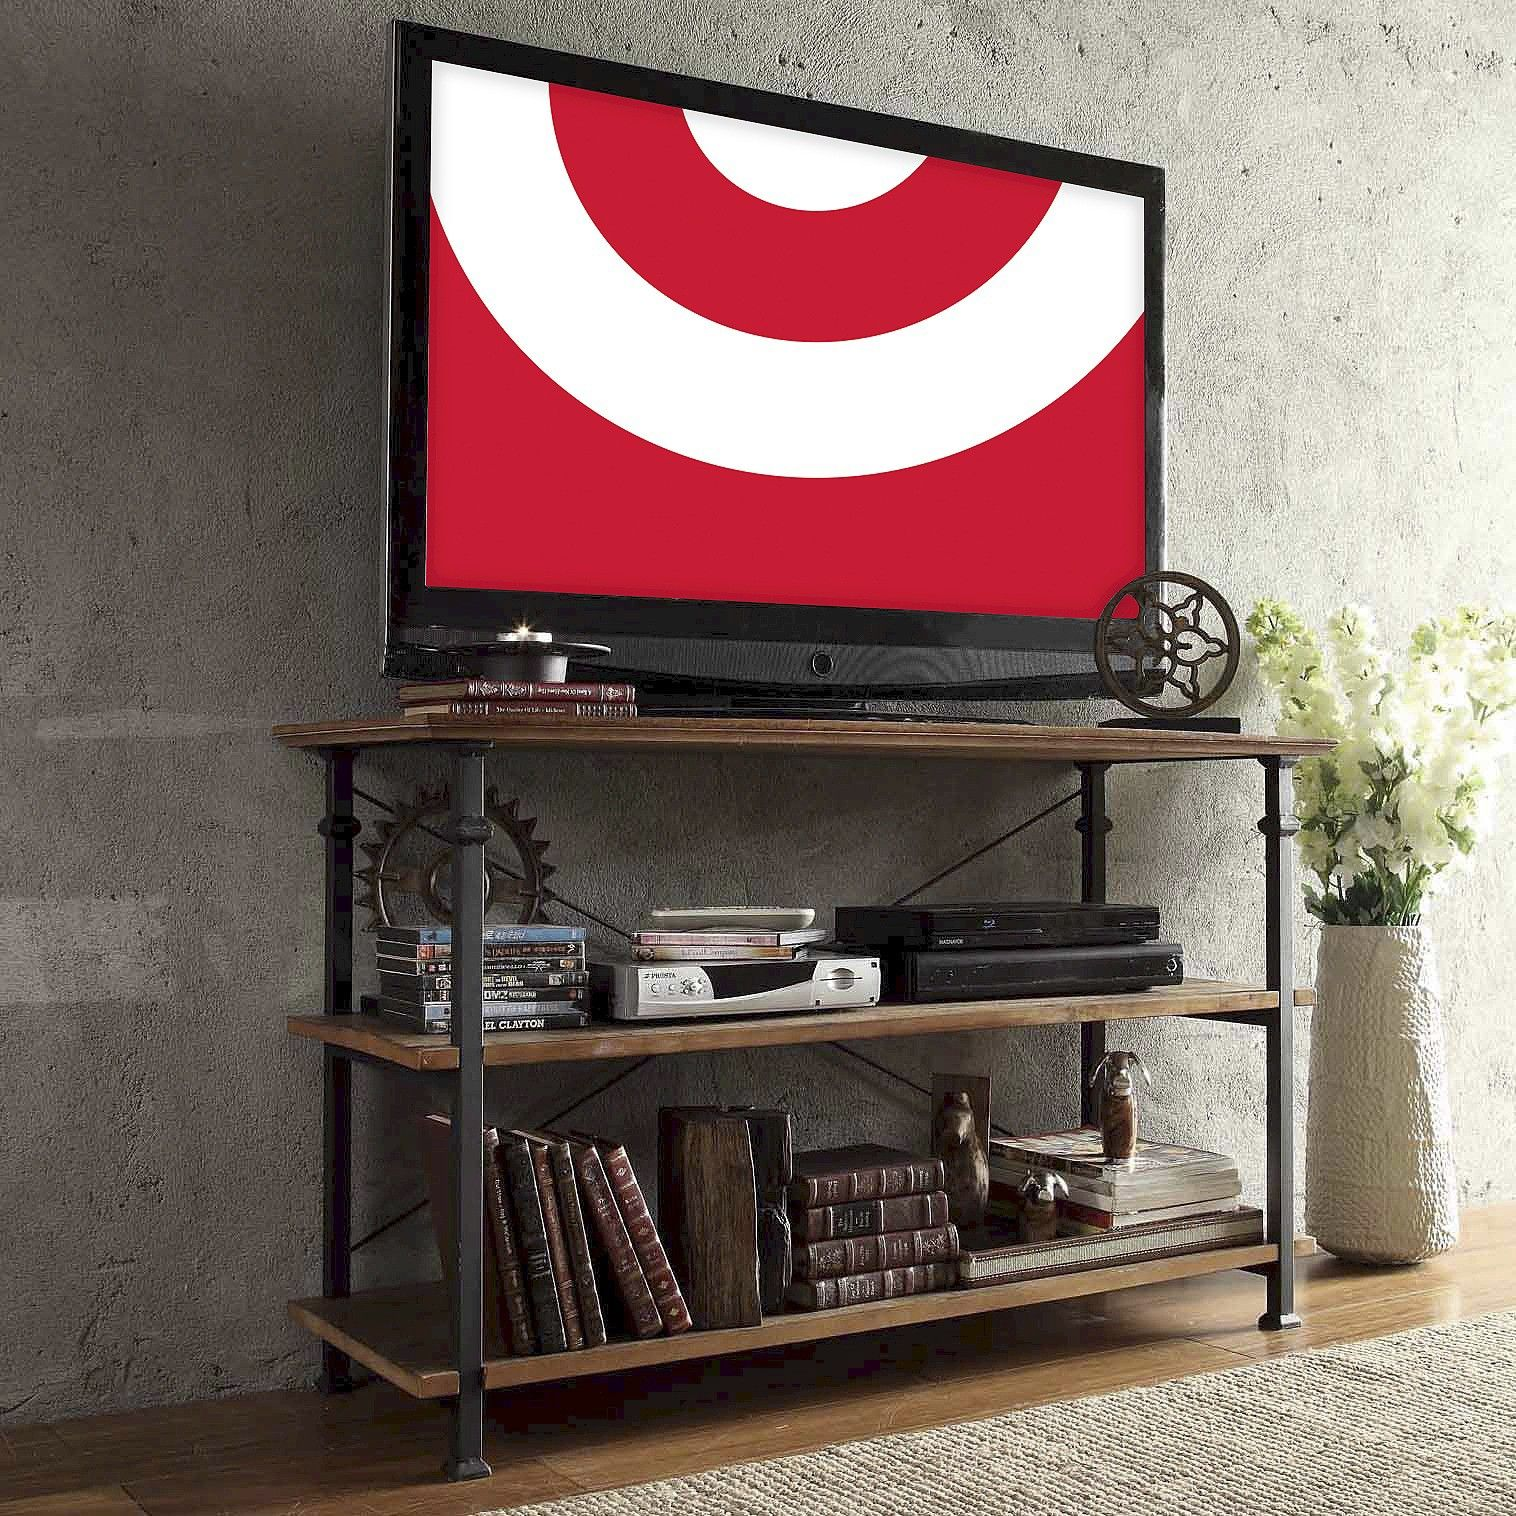 Ronay Rustic Industrial Tv Stand Inspire Q Industrial Tv Stand